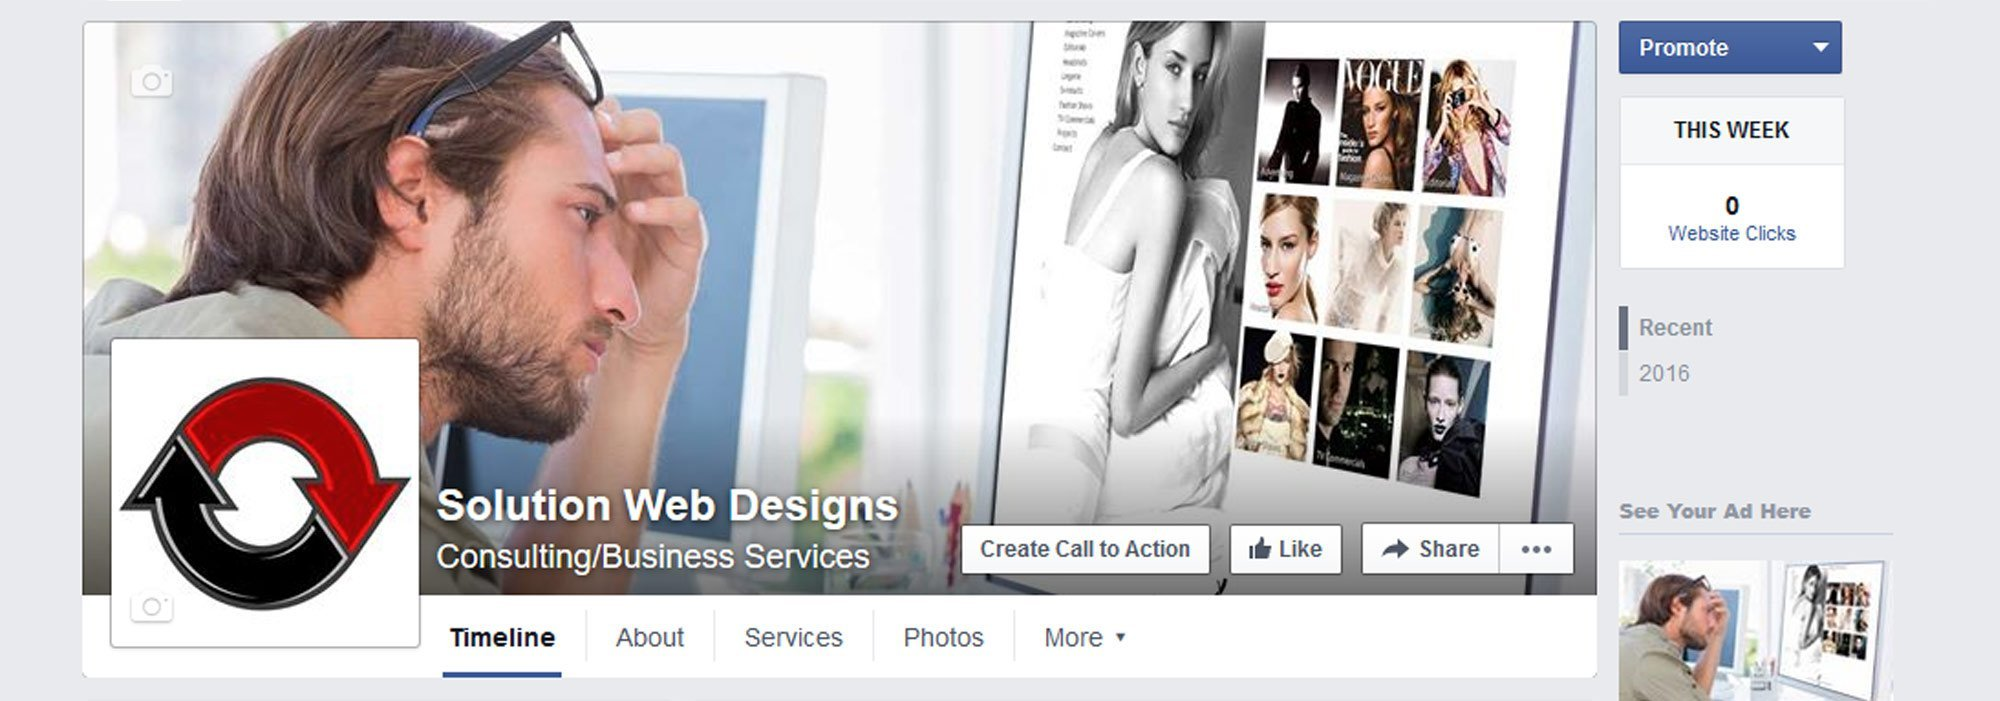 Facebook Marketing Agency Solution Web Designs